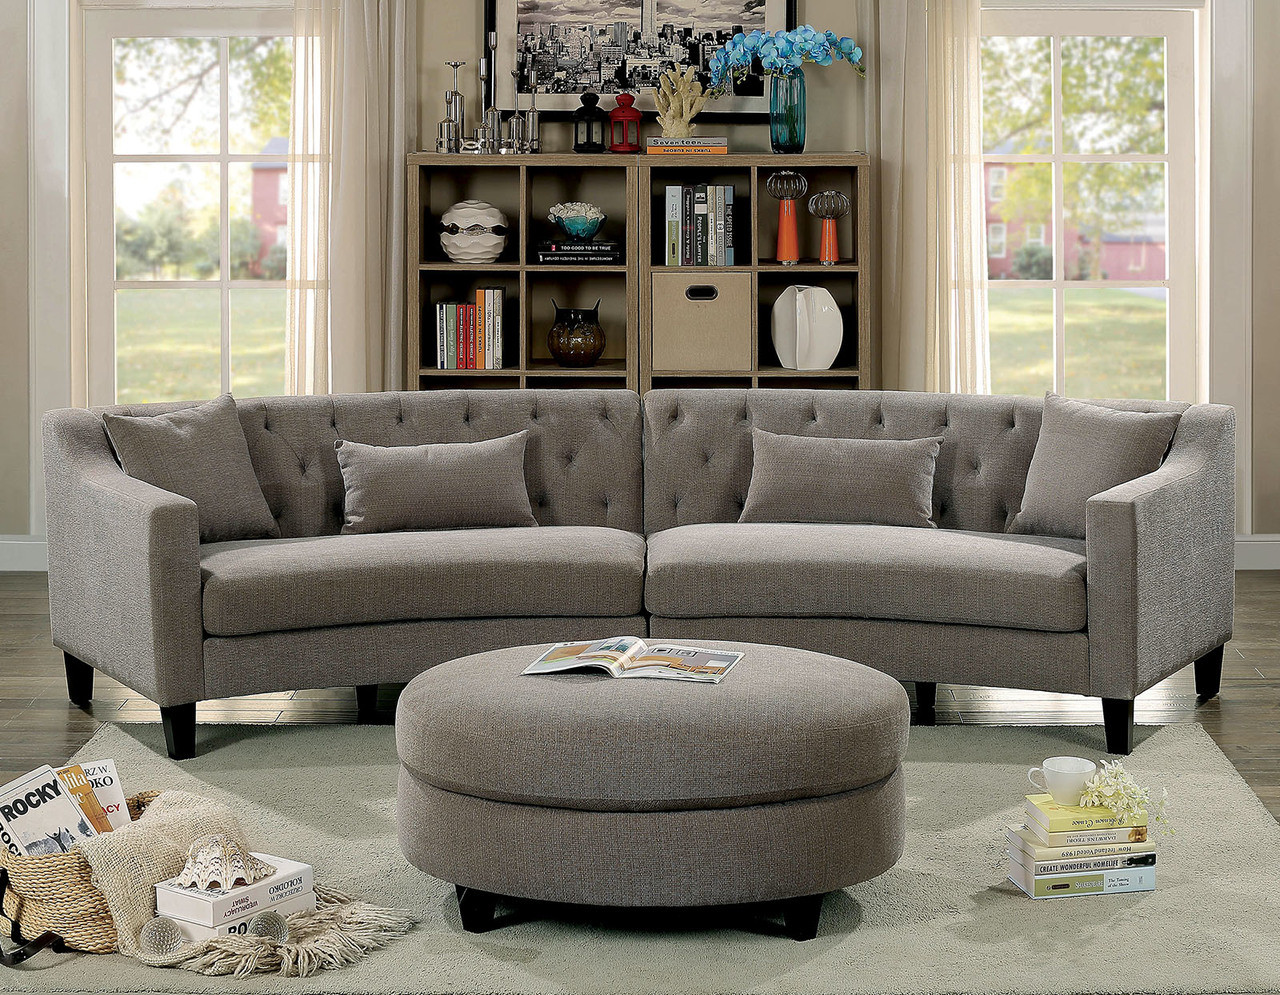 Sectional Corner Couch Furniture Of America Cm6370 Curved Sectional